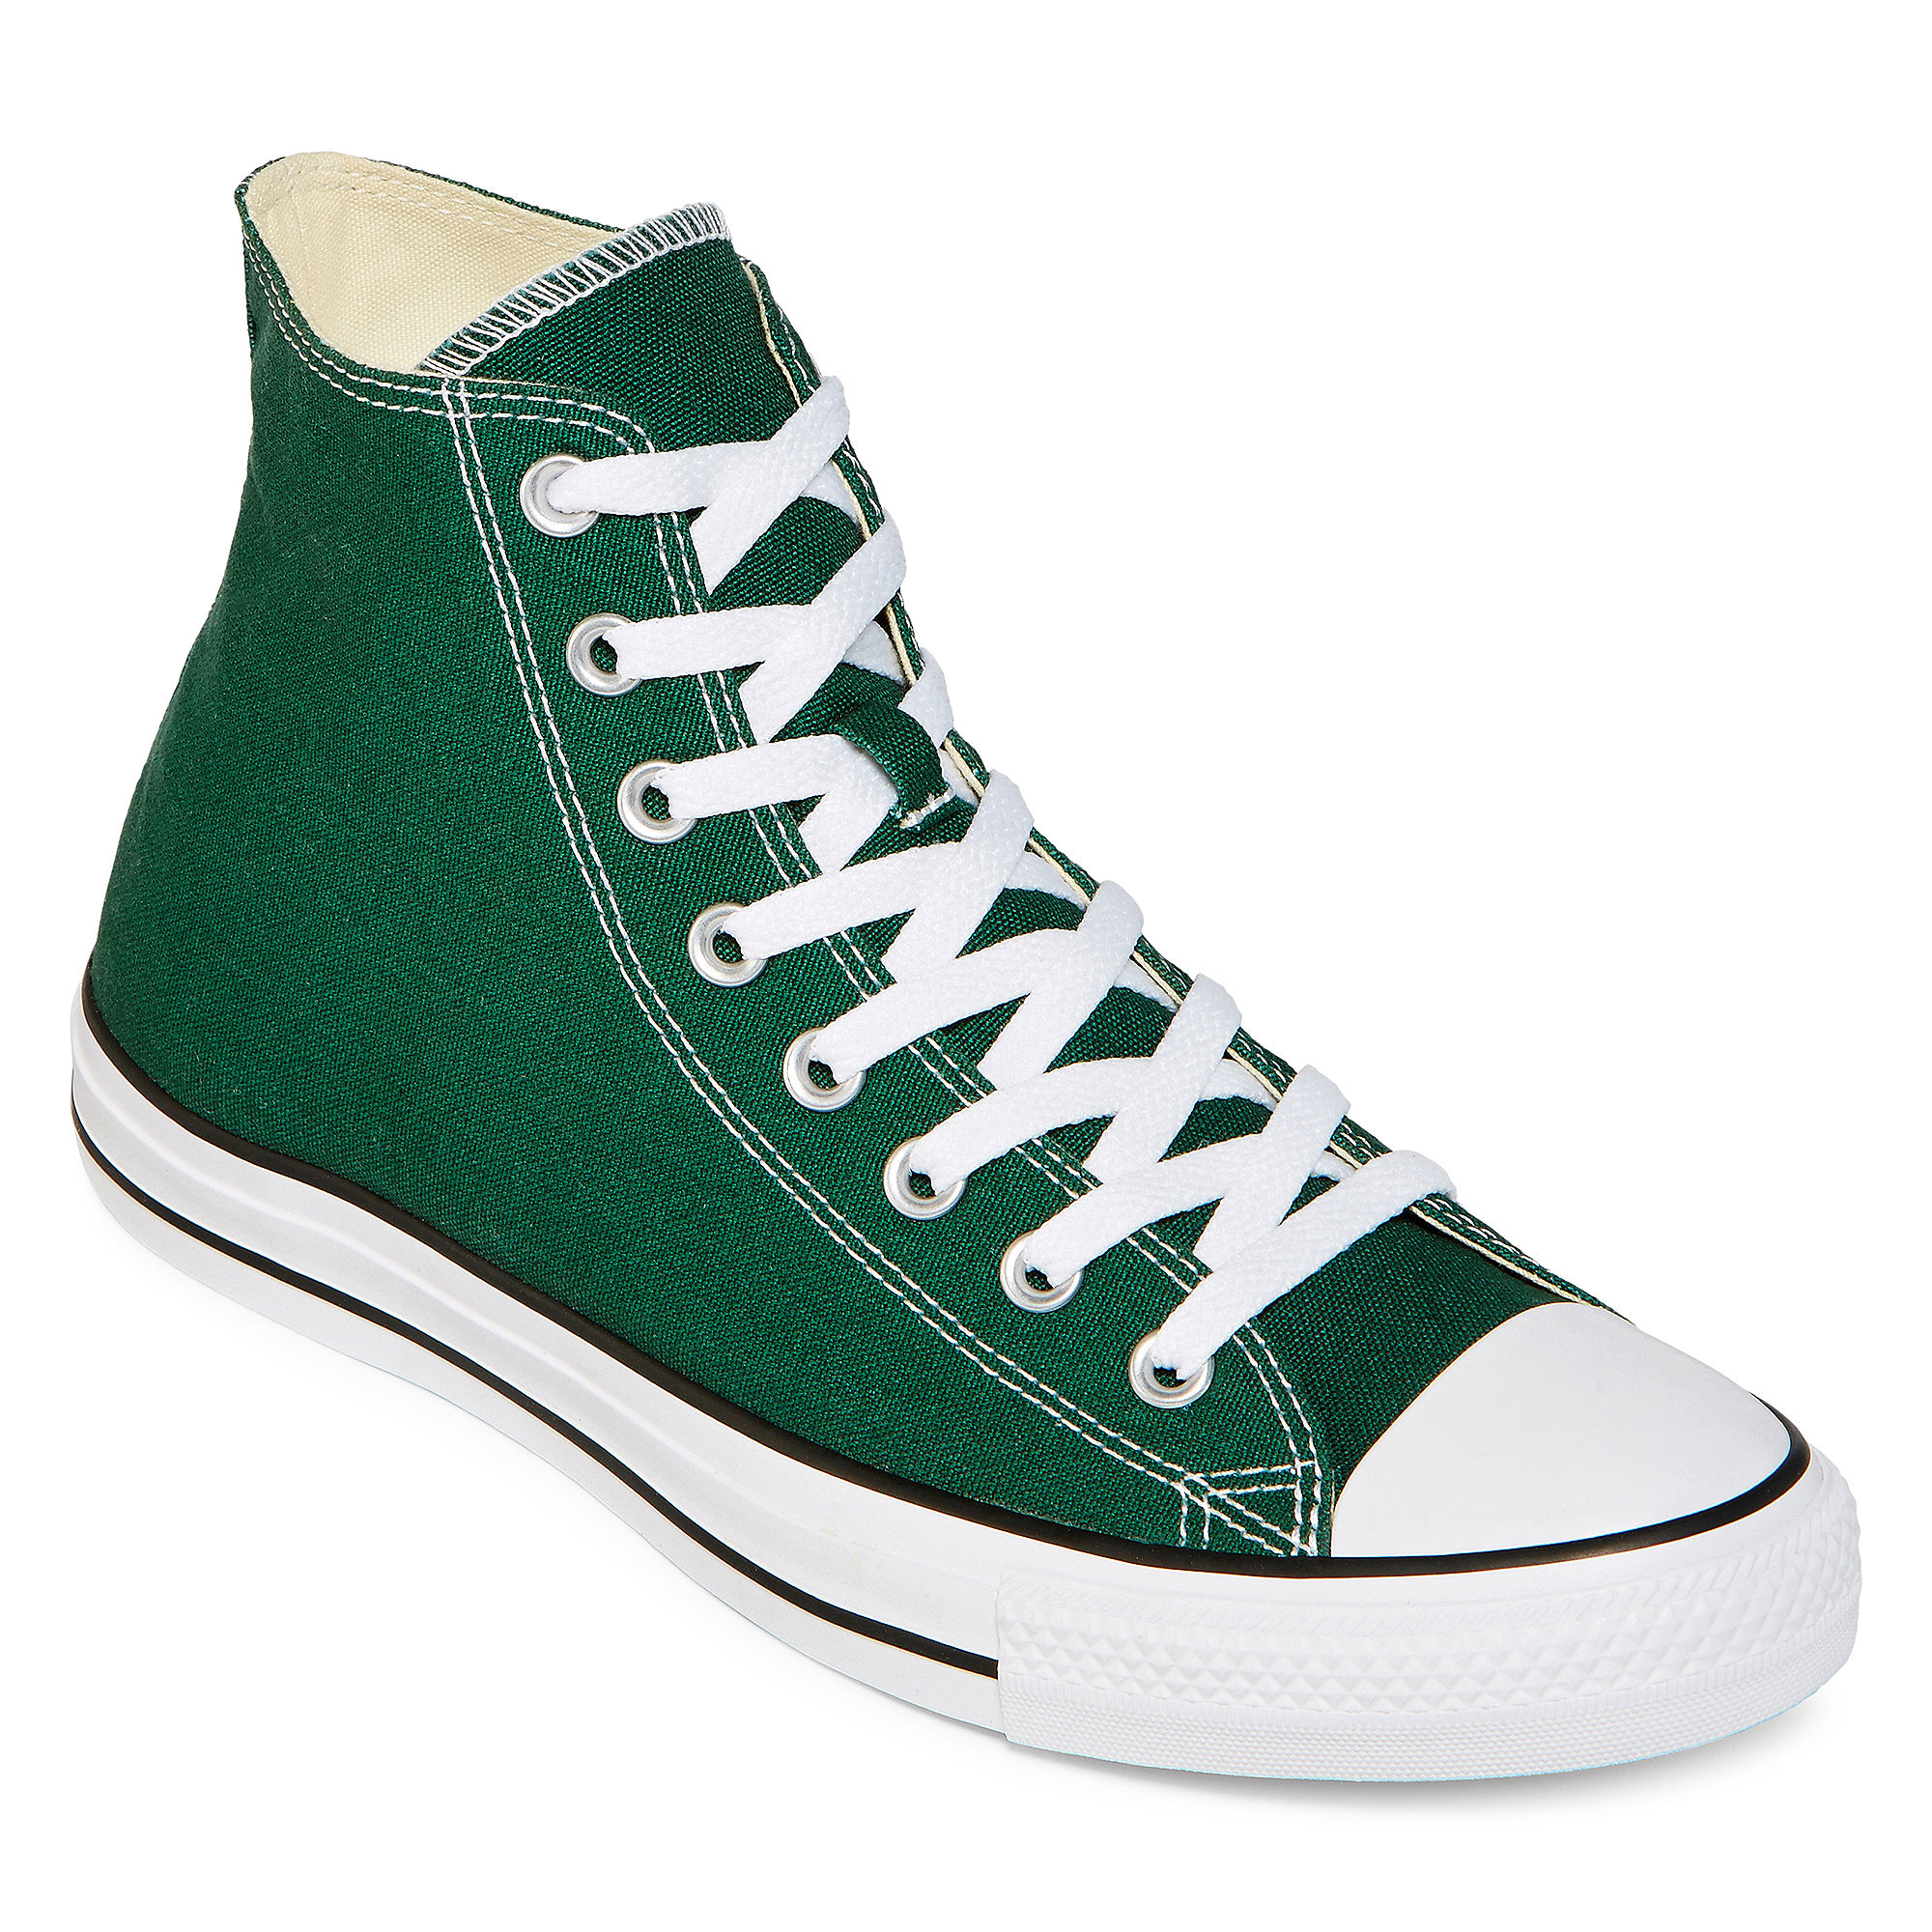 ... All Star High-Top Mens Sneakers. UPC 886956166126 product image for  Converse Unisex Chuck Taylor Hi Gloom Gloom Green Basketball Shoe 8